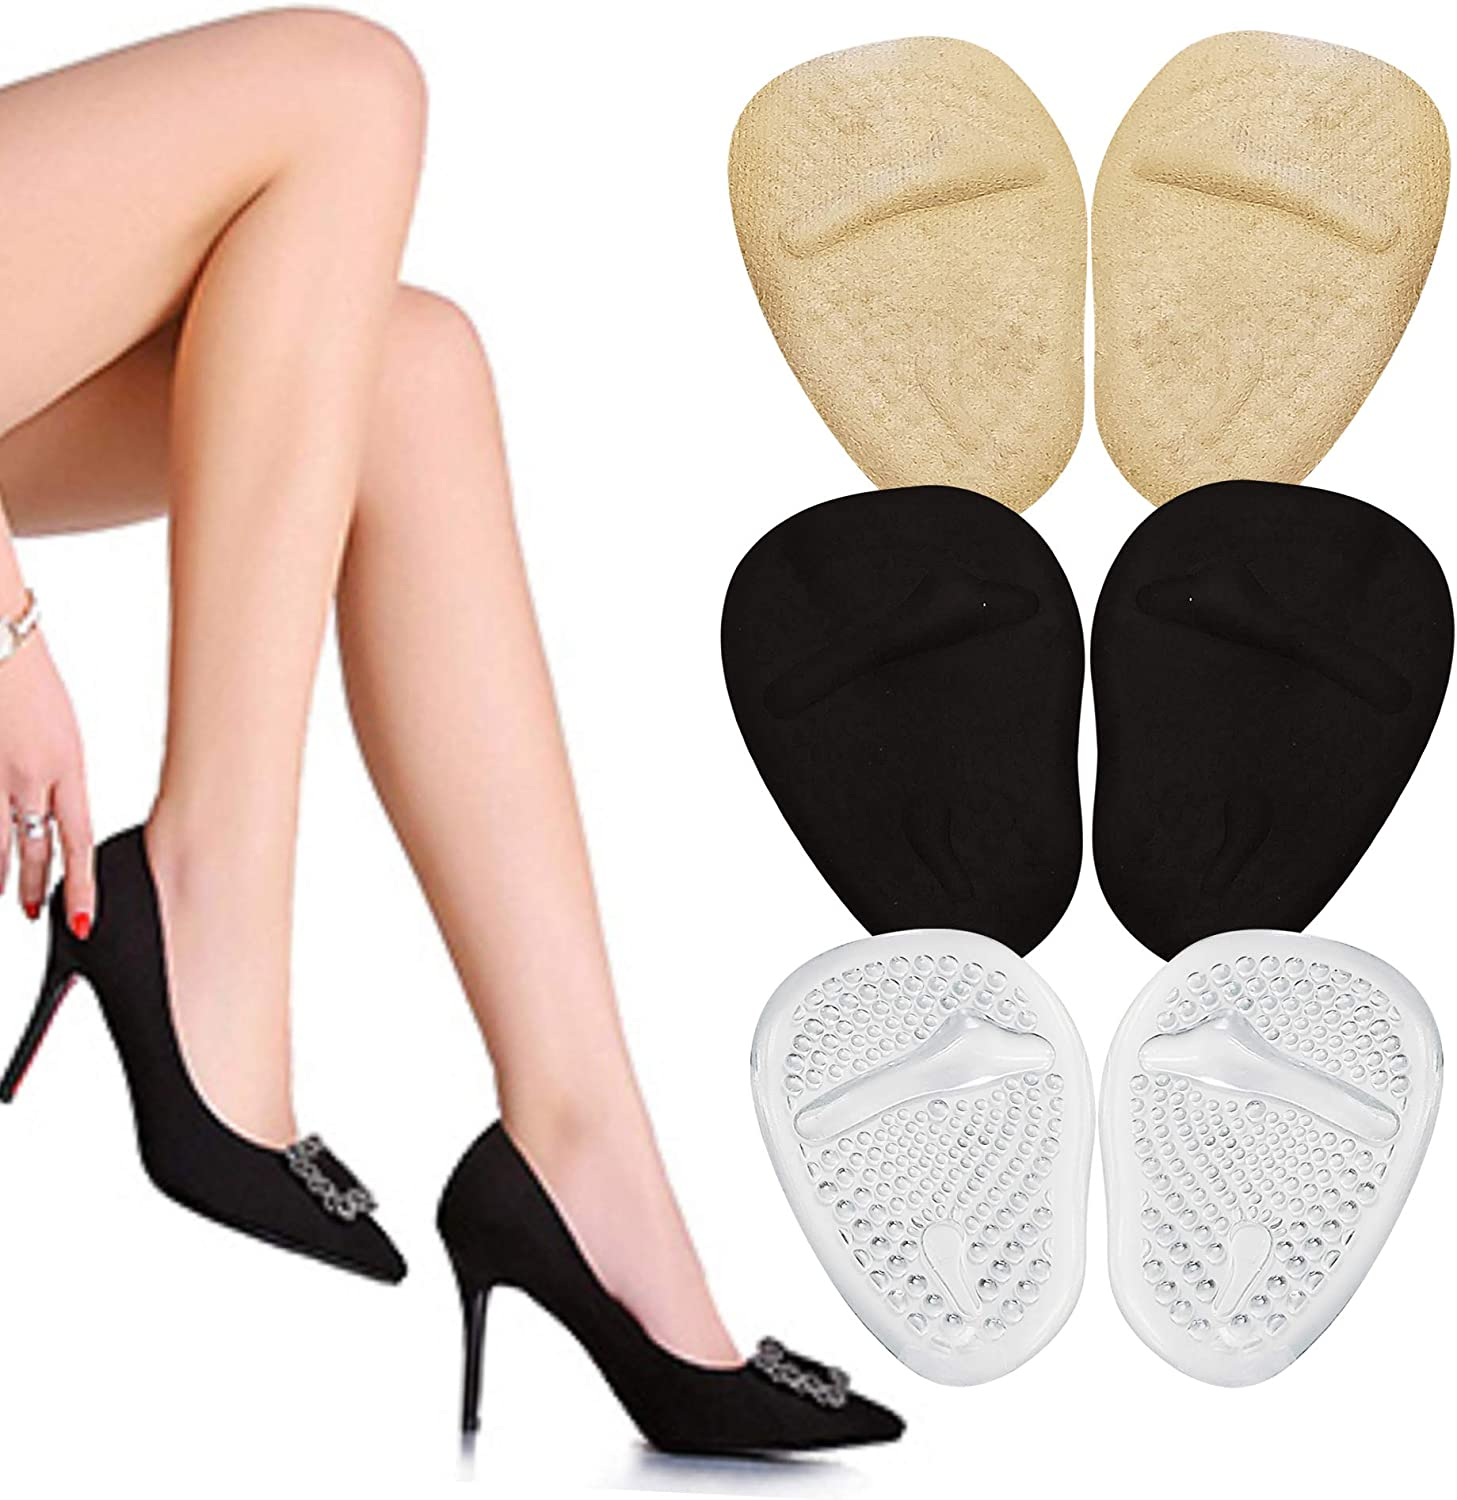 High Heel Cushions -Ball of Foot Pads- Non Slip Shoe Inserts - Forefoot Metatarsal Pads for Women & Men for Foot Pain Relief -High Heel Inserts for shoe comfort- Beige Clear Black Ball of Foot Cushion: Health & Personal Care